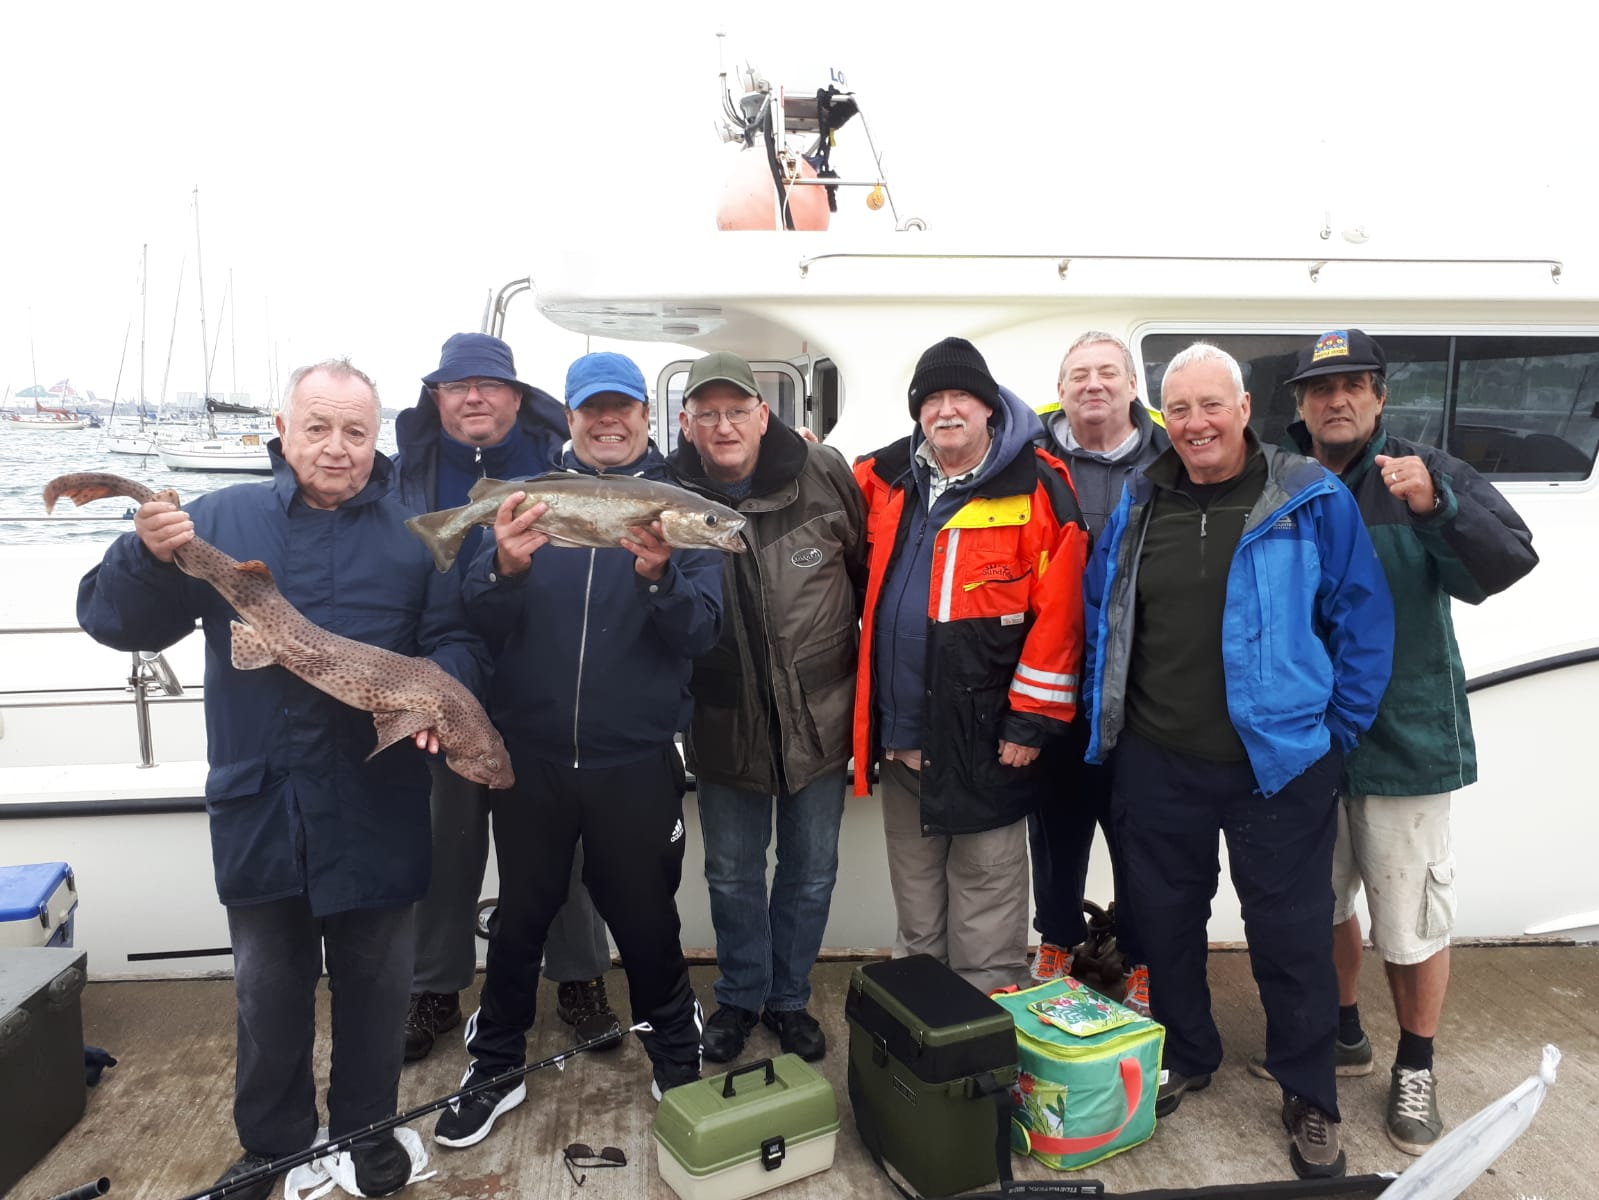 Sea fishing club is a big catch with locals!